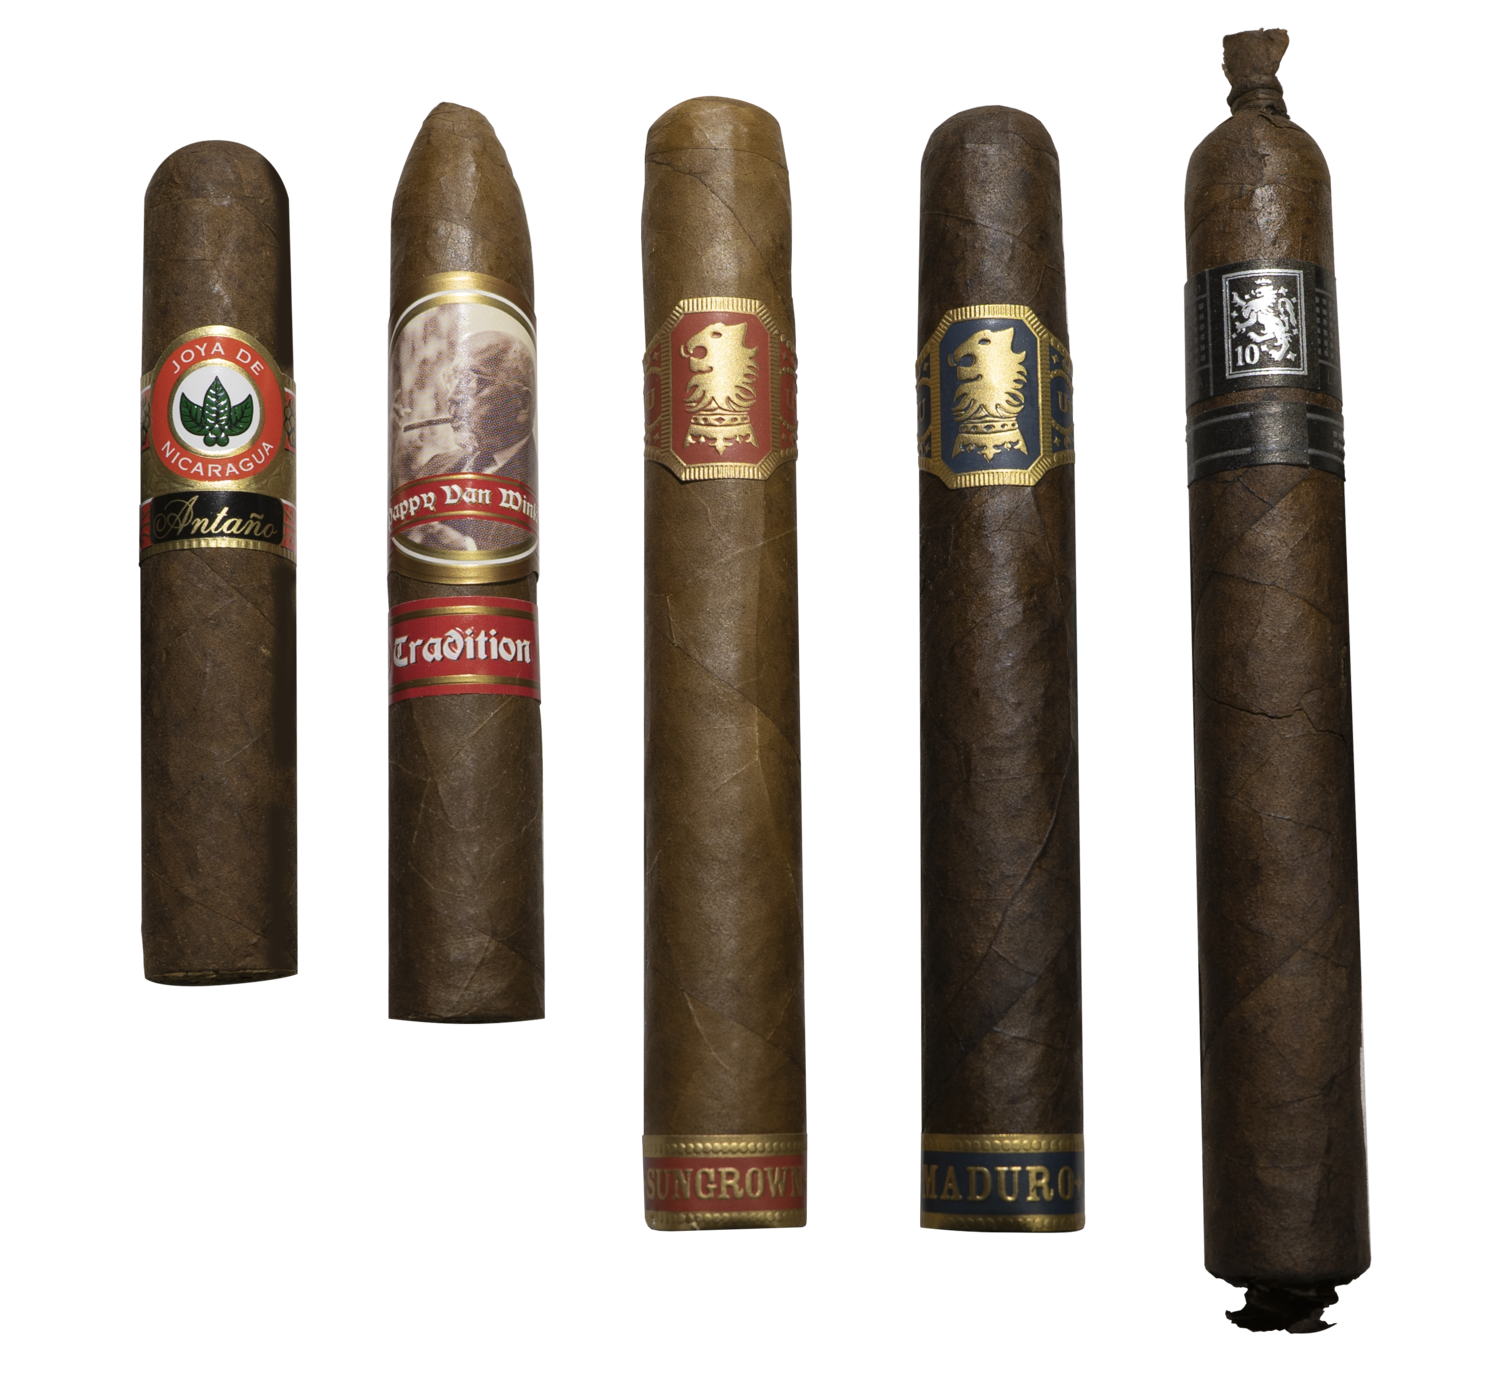 Liga 10th Anniversary Sampler